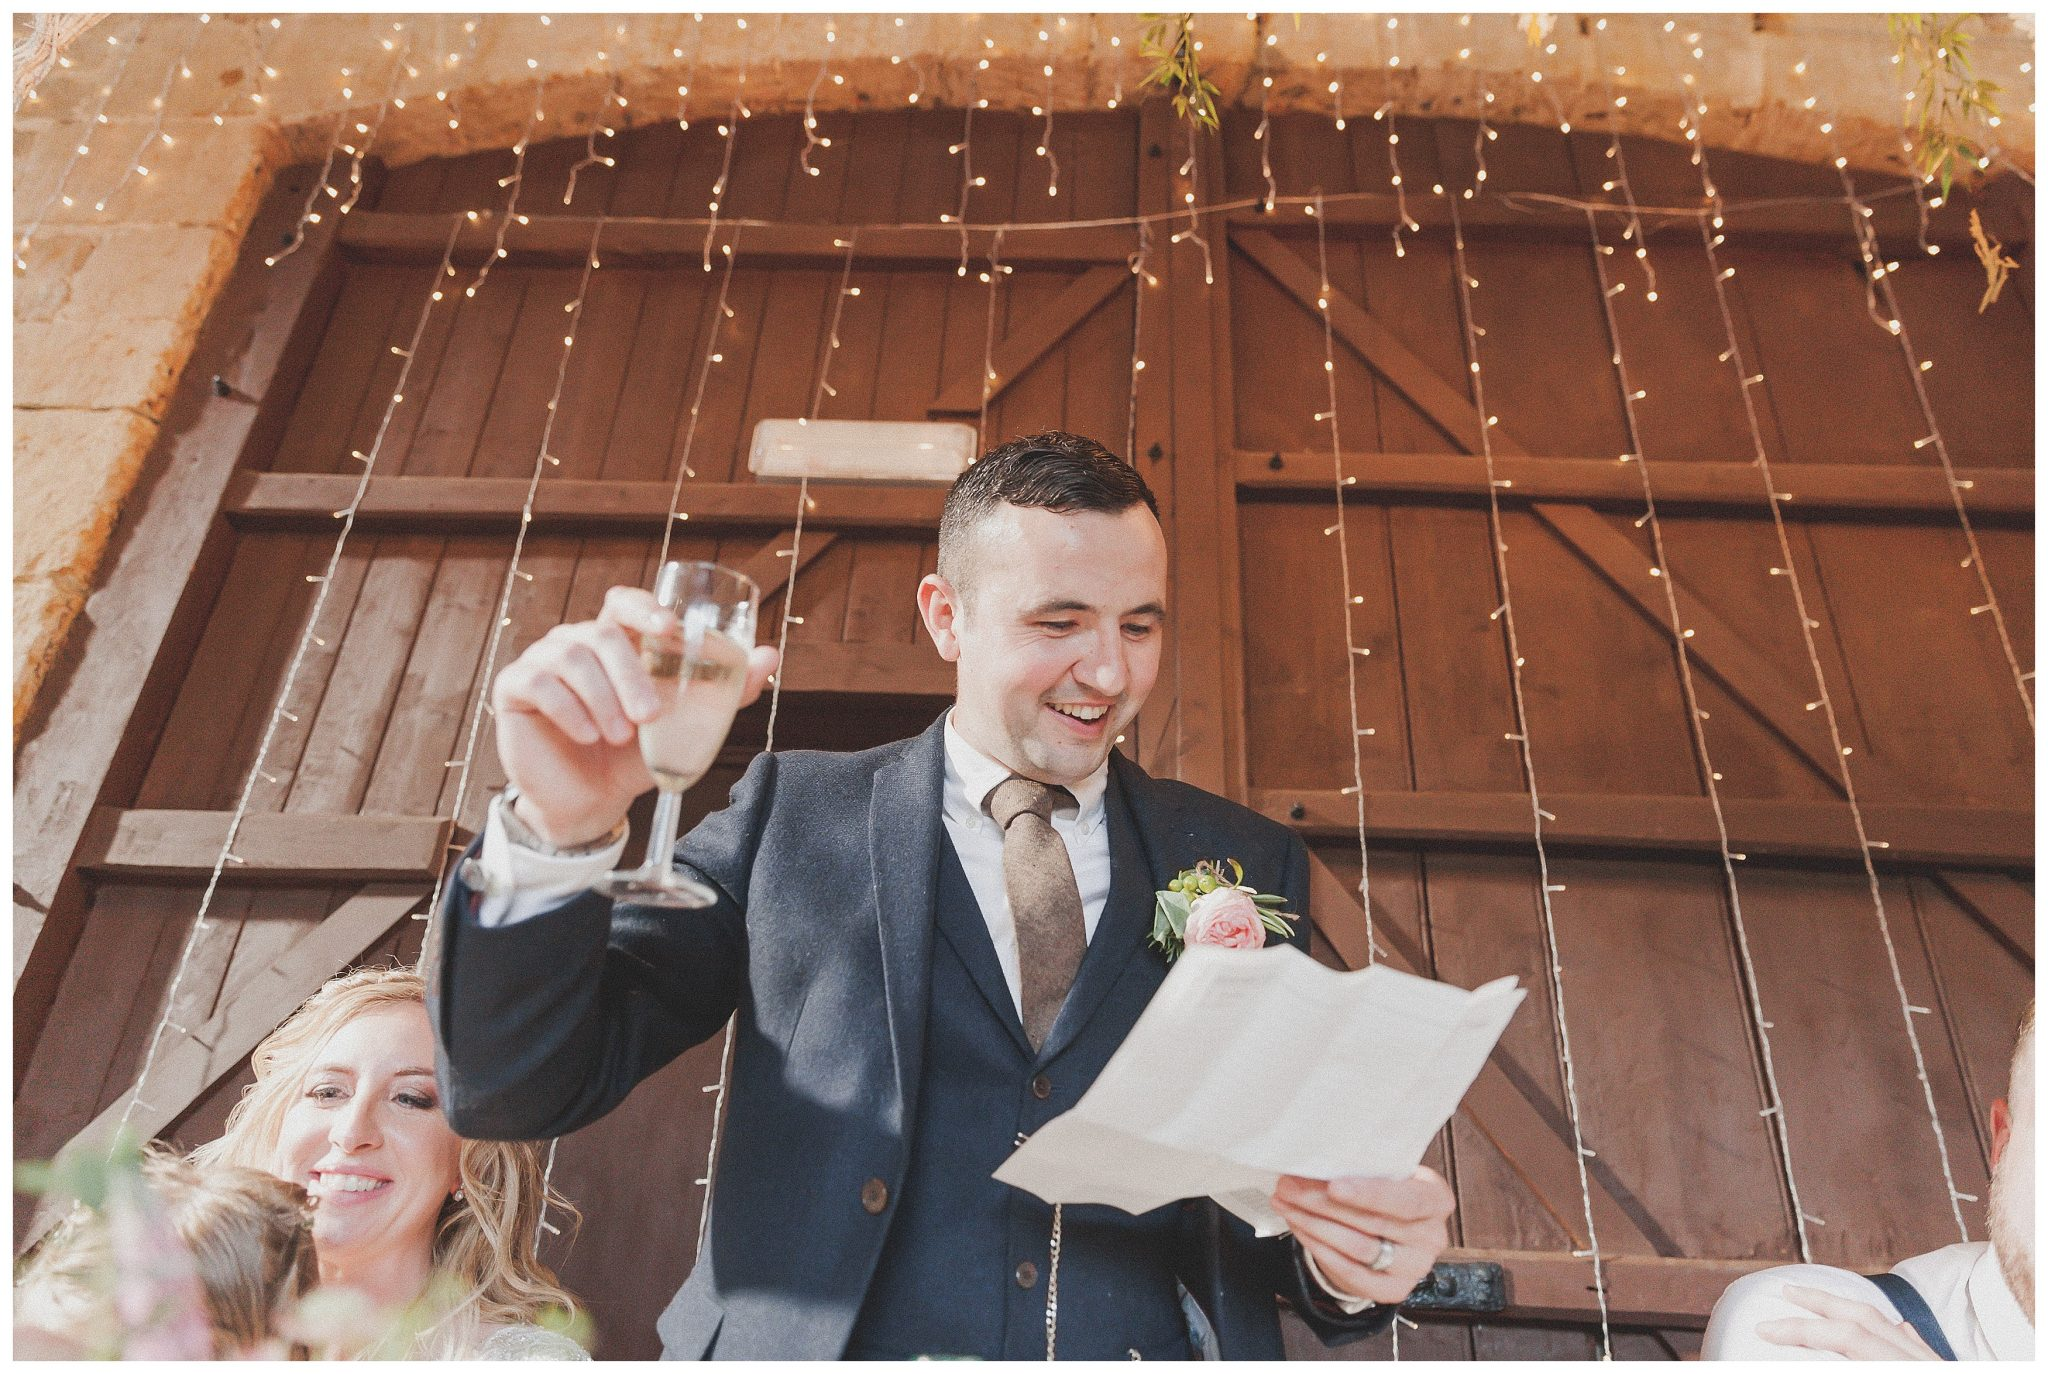 Groom making a toast